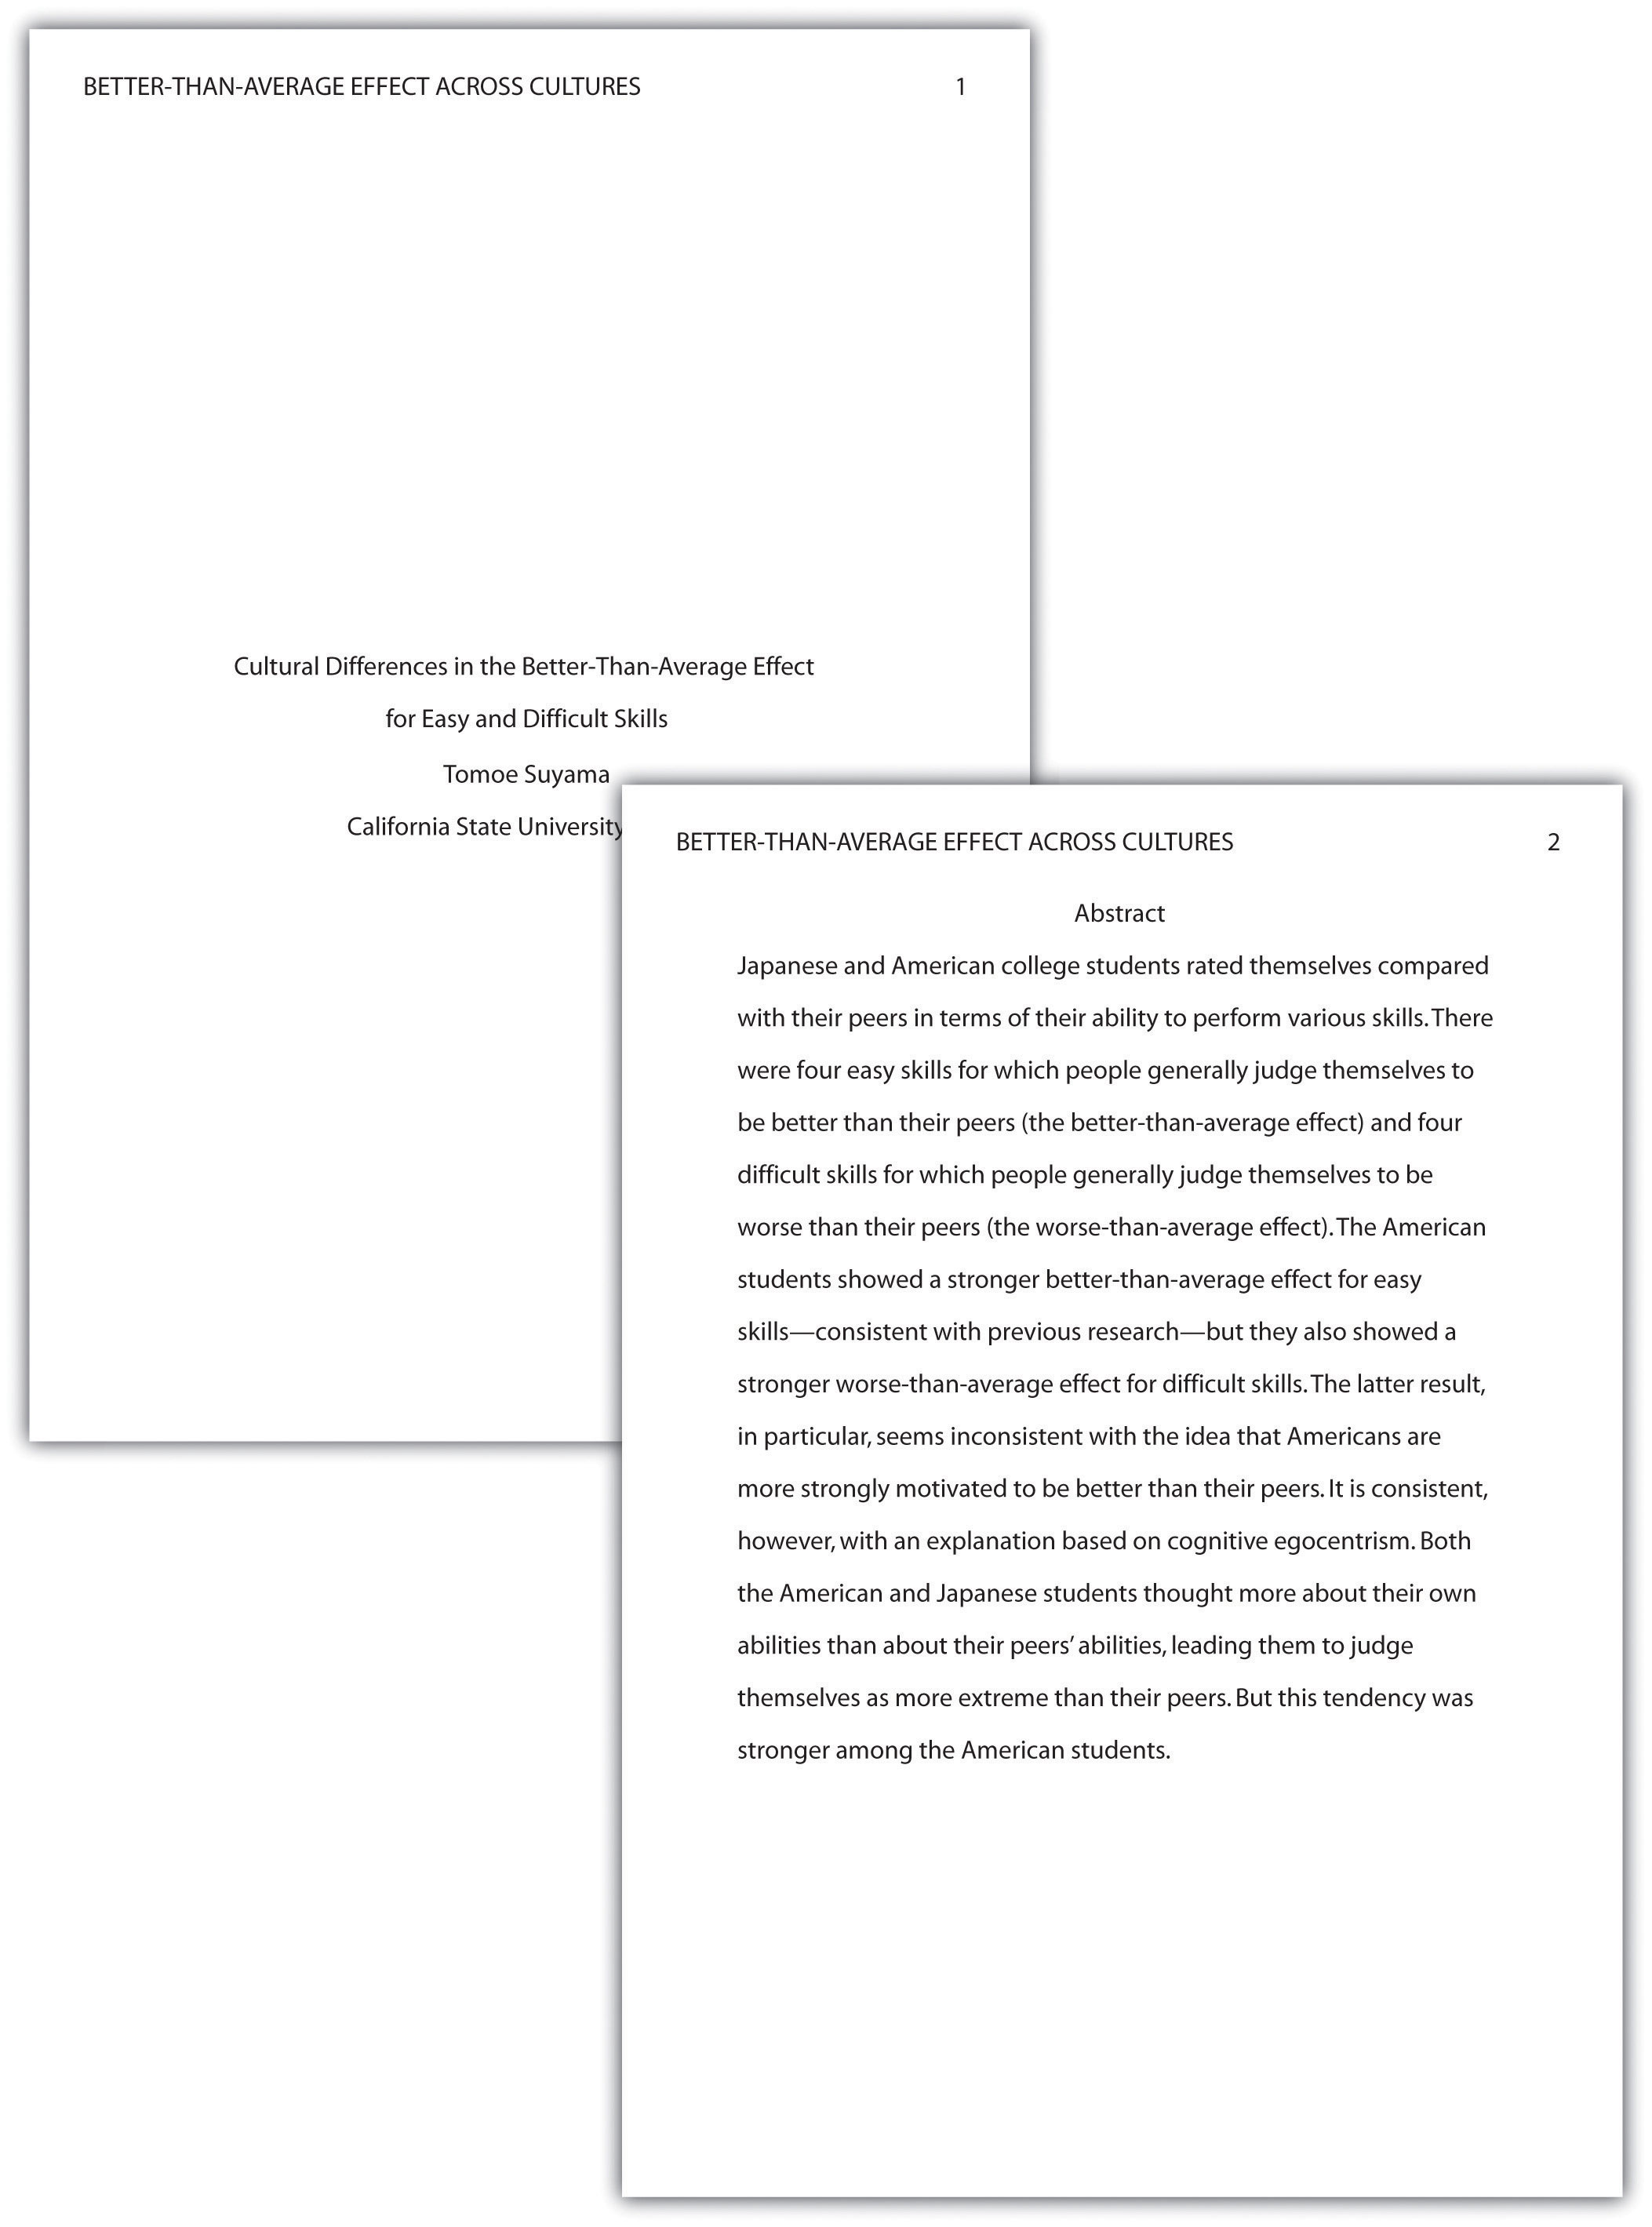 apa essay papers example of a essay paper in apa format essay ...